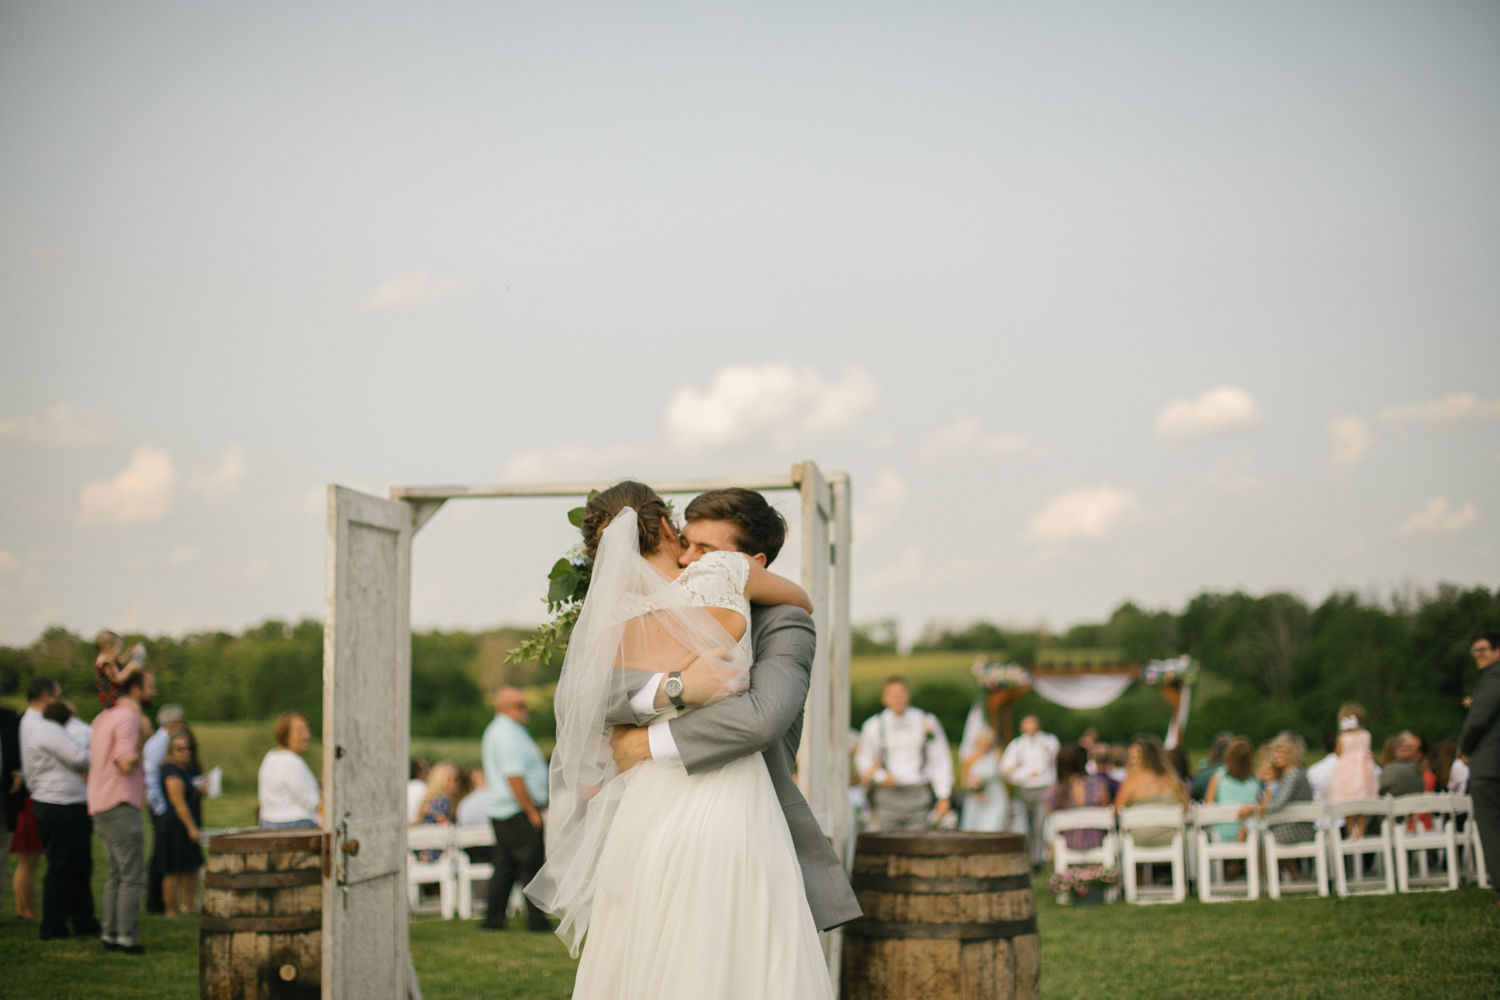 2019.06.01_CraskWedding_Starks-116.jpg